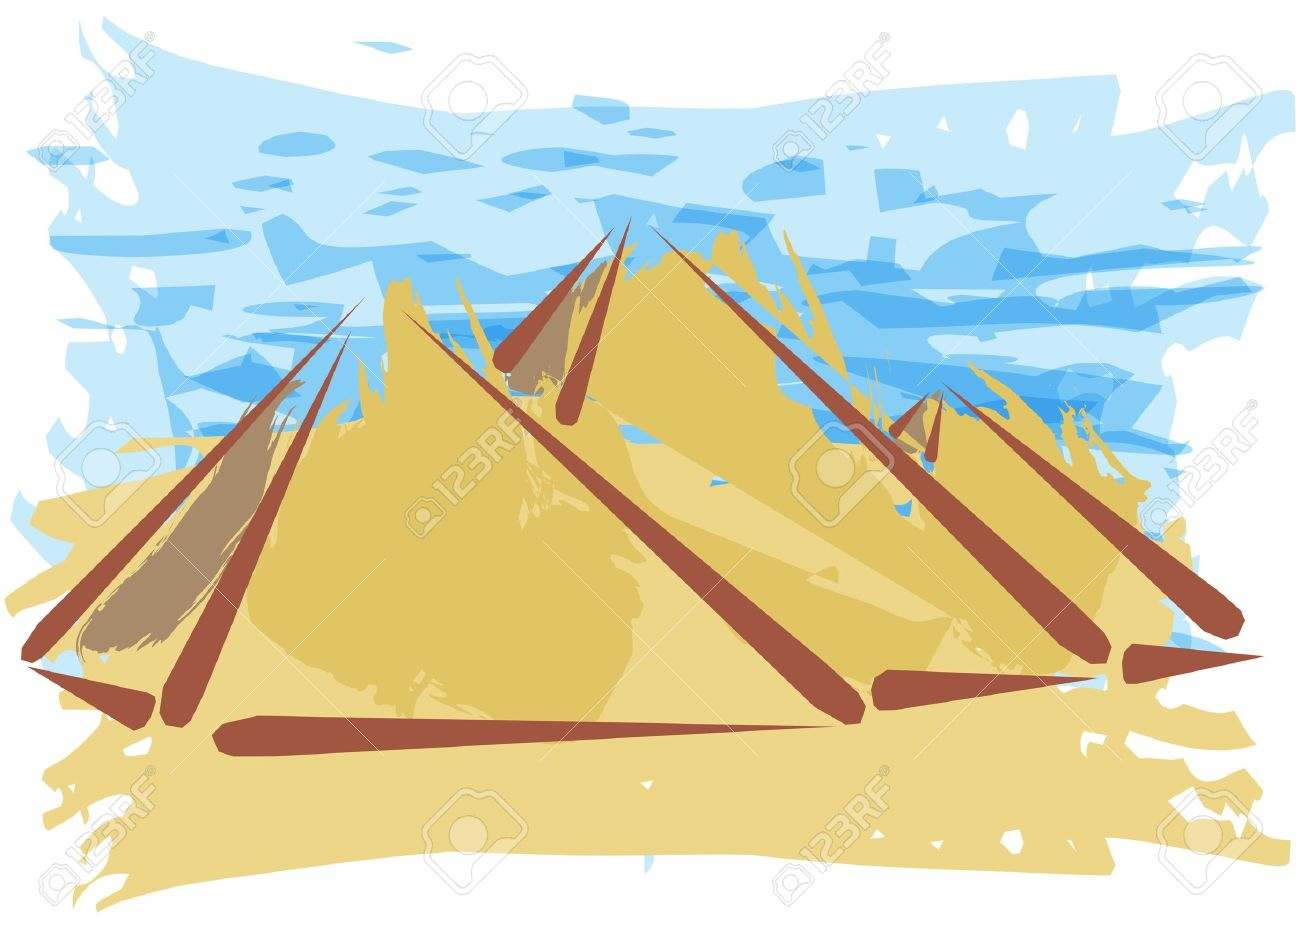 Pyramide, Travel Desitnation Concept.